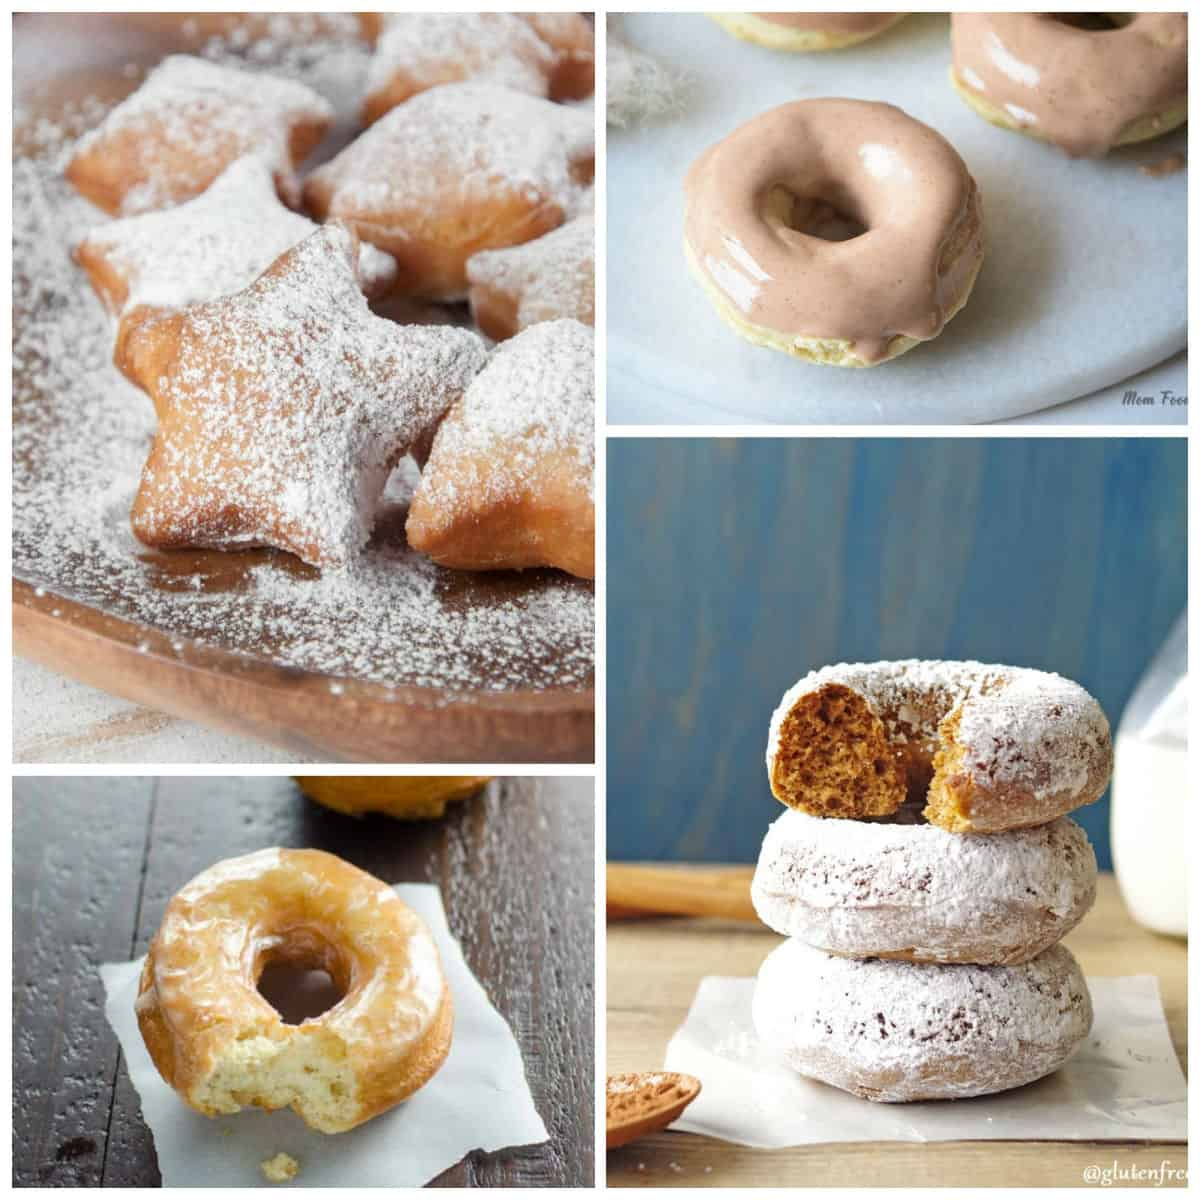 Sugar dusted and glazed donut mosaic with four images